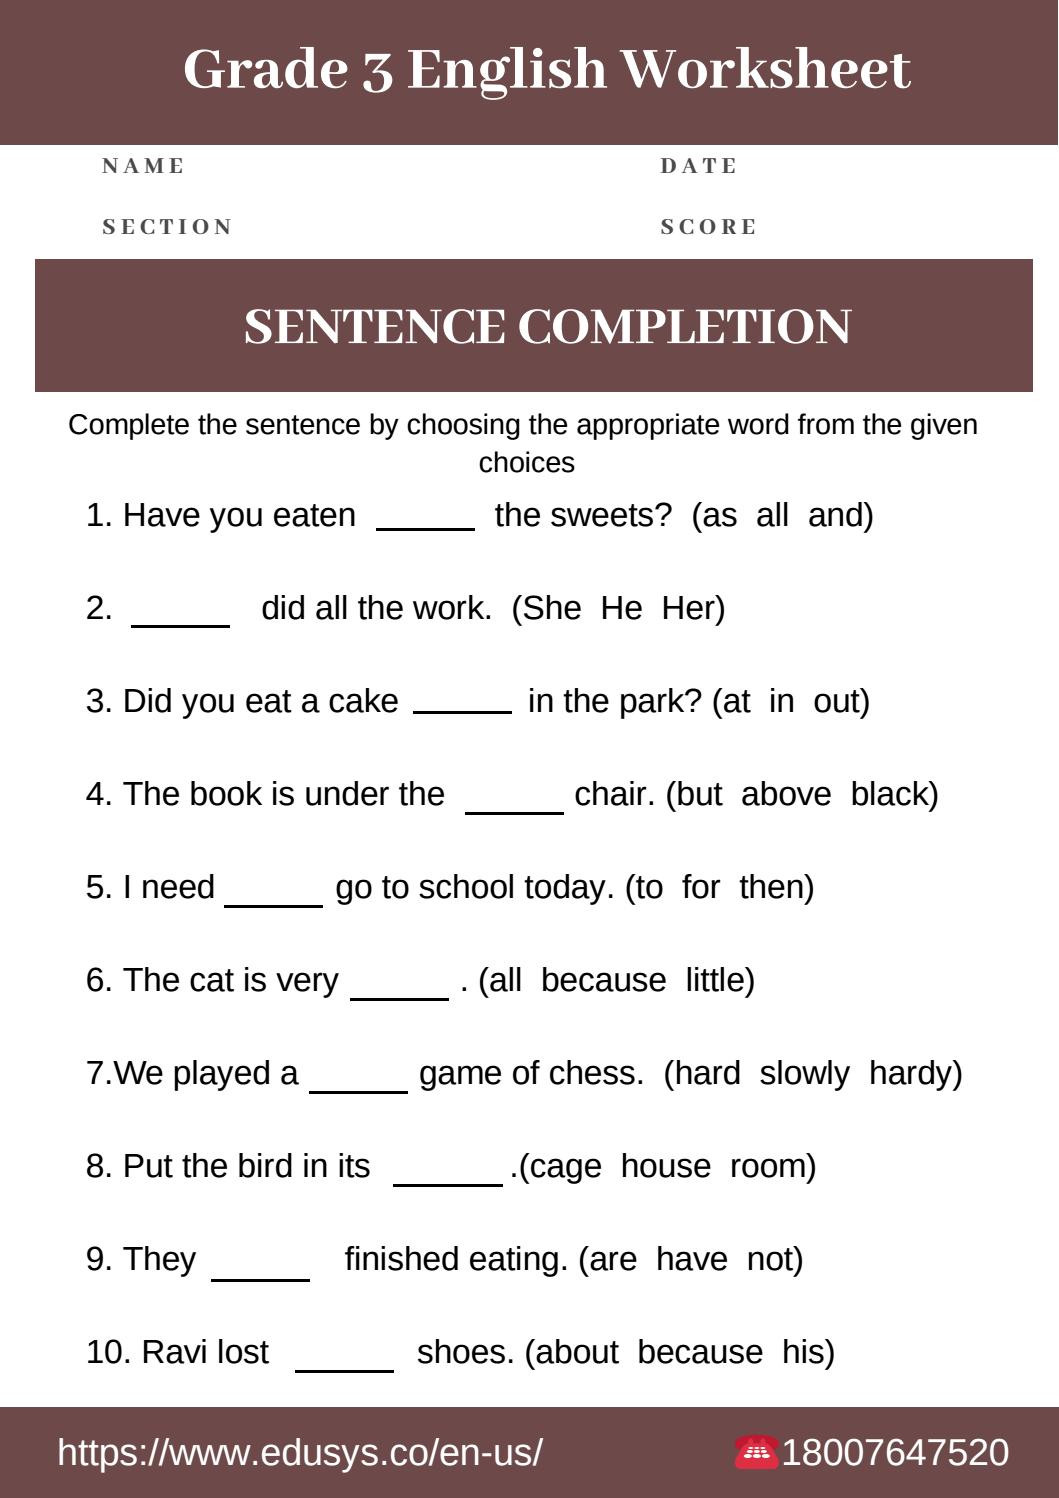 Third Grade Grammar Worksheets 3rd Grade English Grammar Worksheet Free Pdf by Nithya issuu